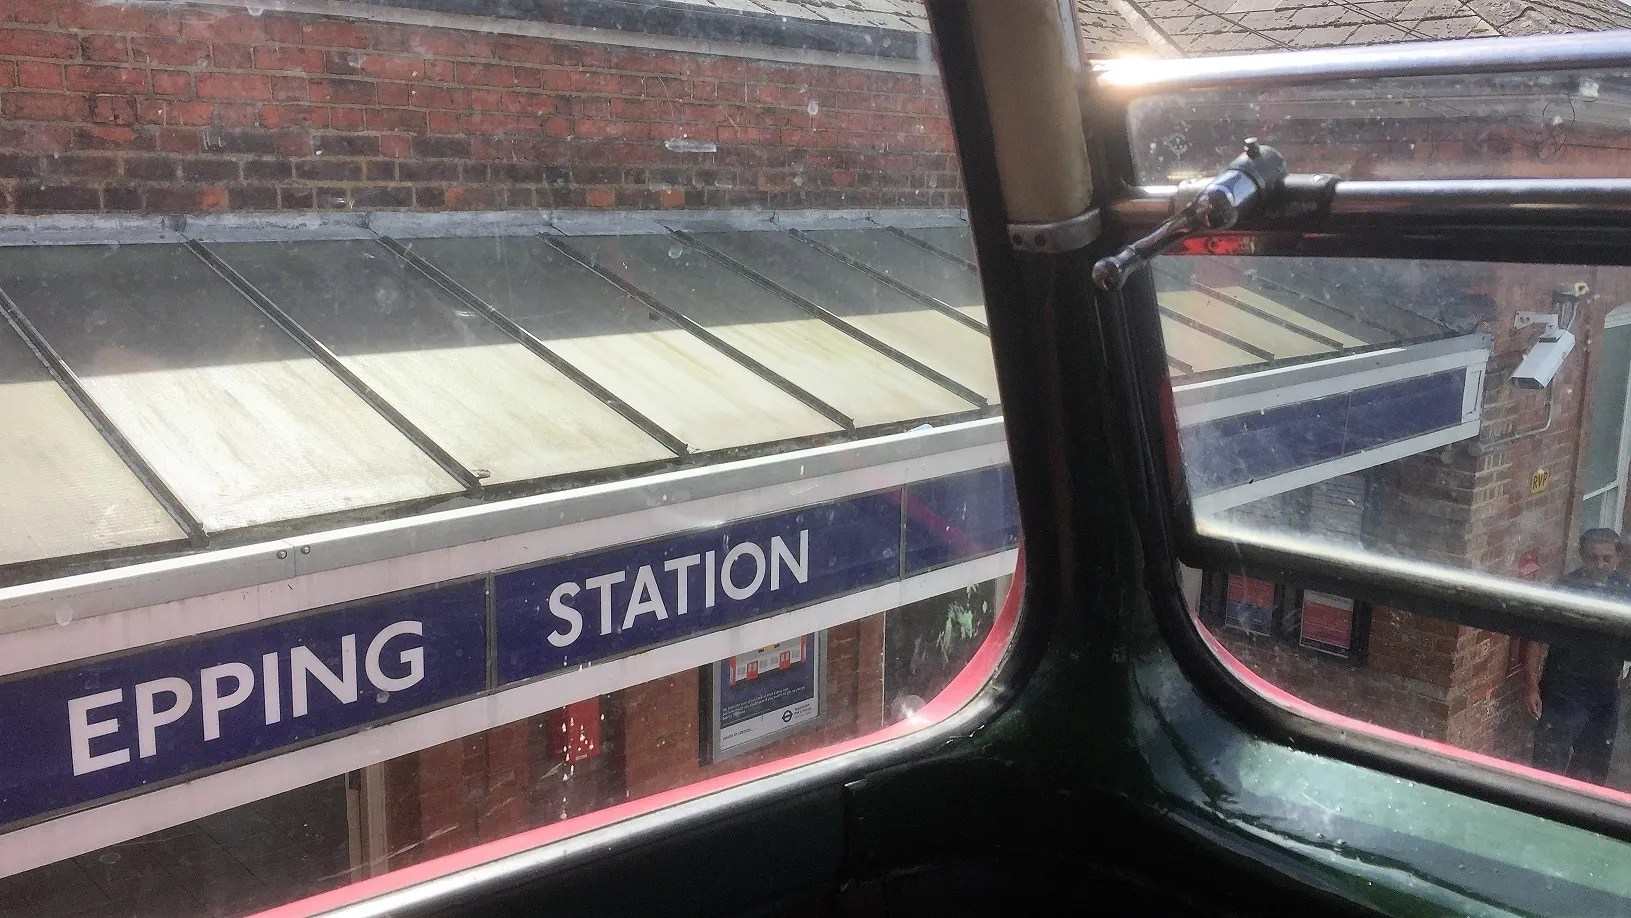 View of front of Epping Station from the top deck of RTL1076